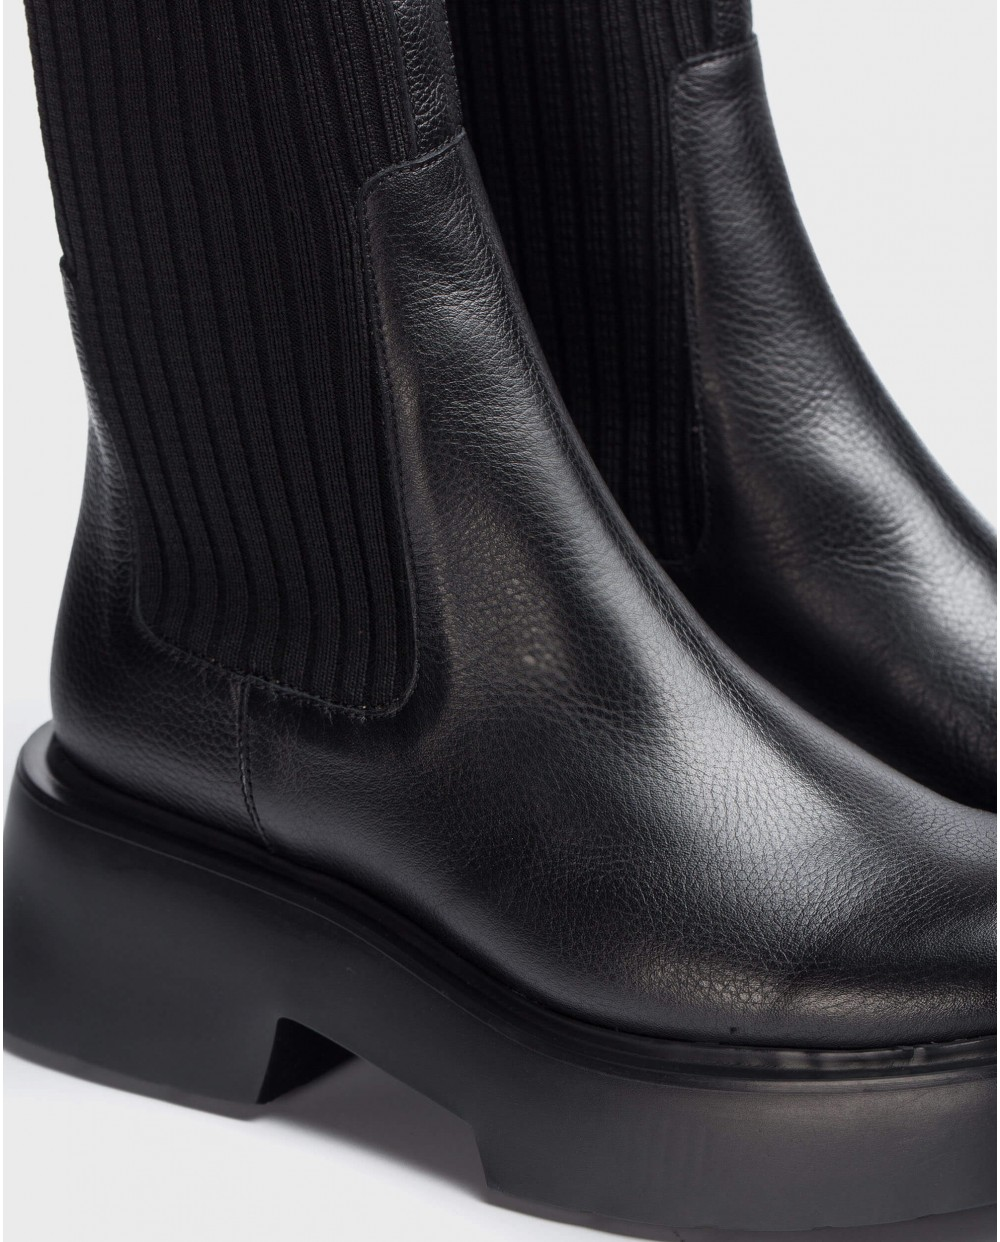 Wonders-Ankle Boots-Black sock ankle Boot